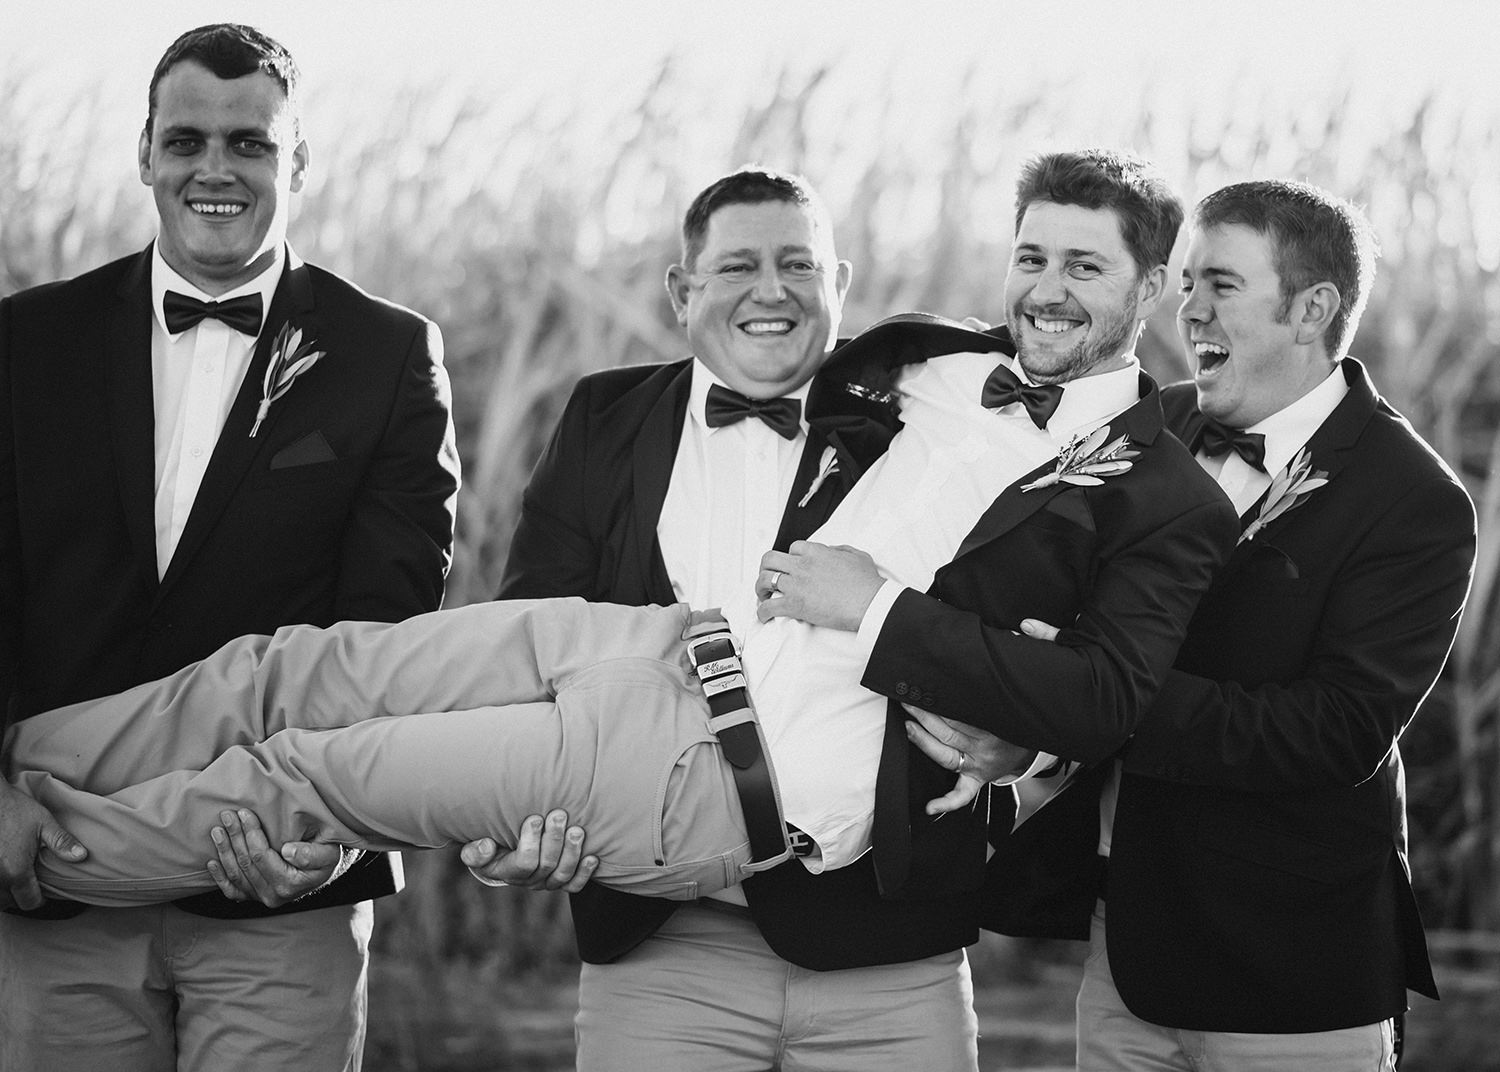 Groomsmen carrying groom and laughing